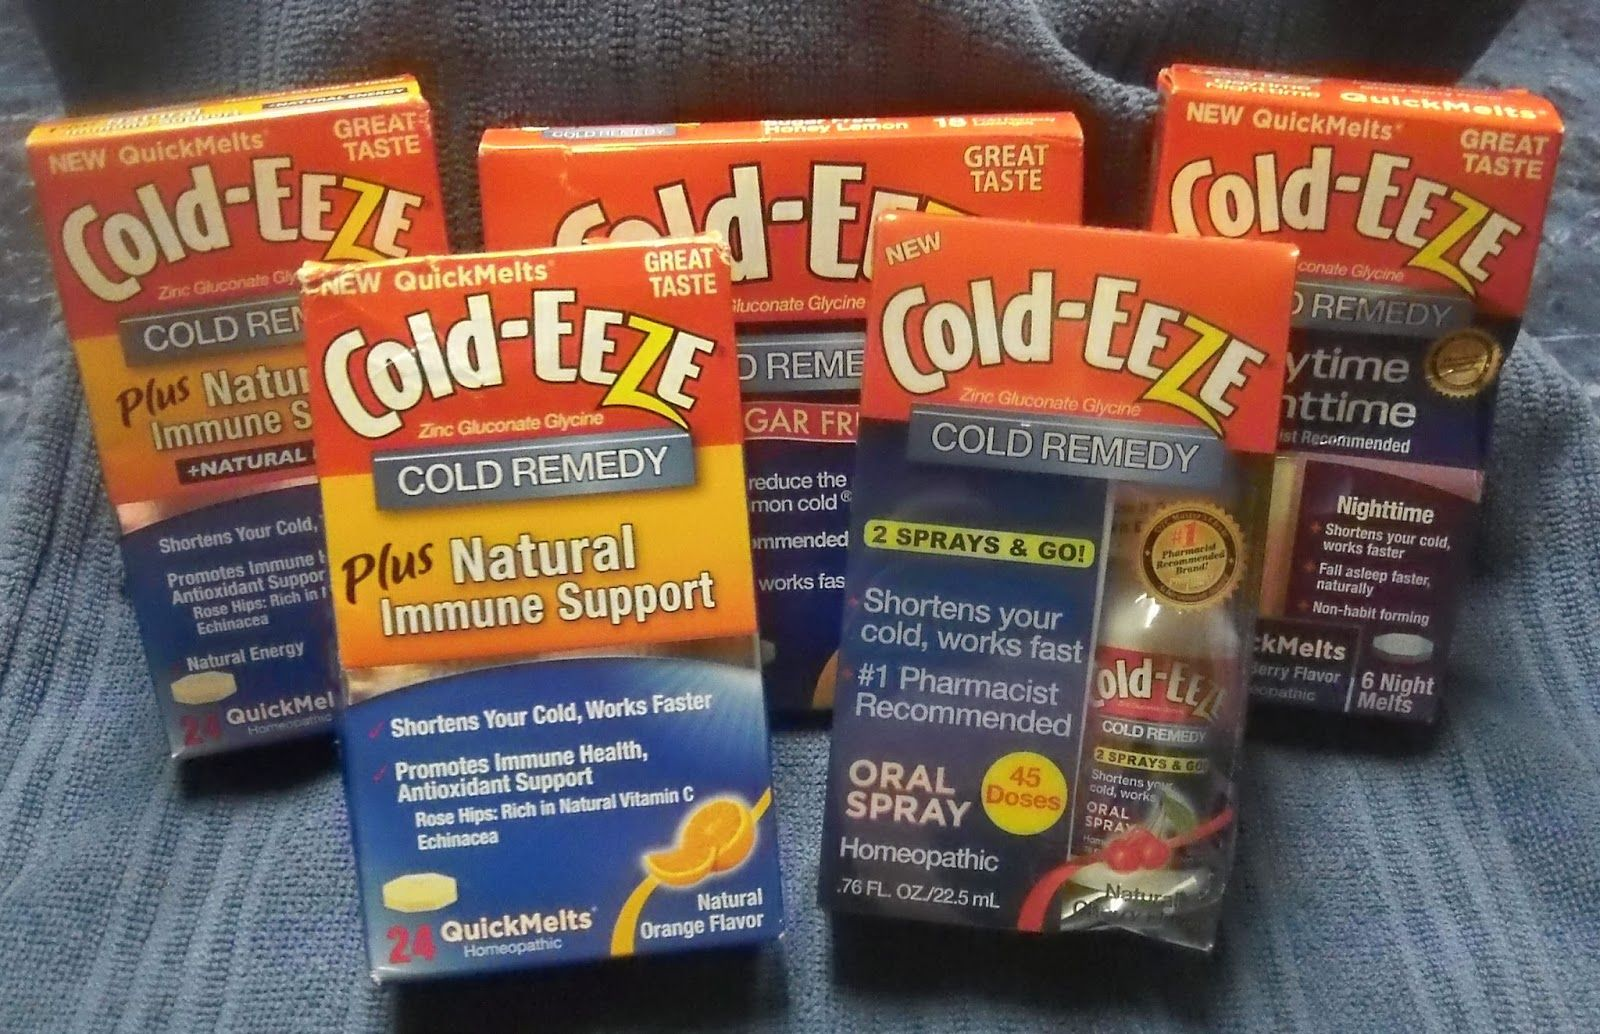 Mary's Cup of Tea Cold-EEZE Cold Products Review & Giveaway